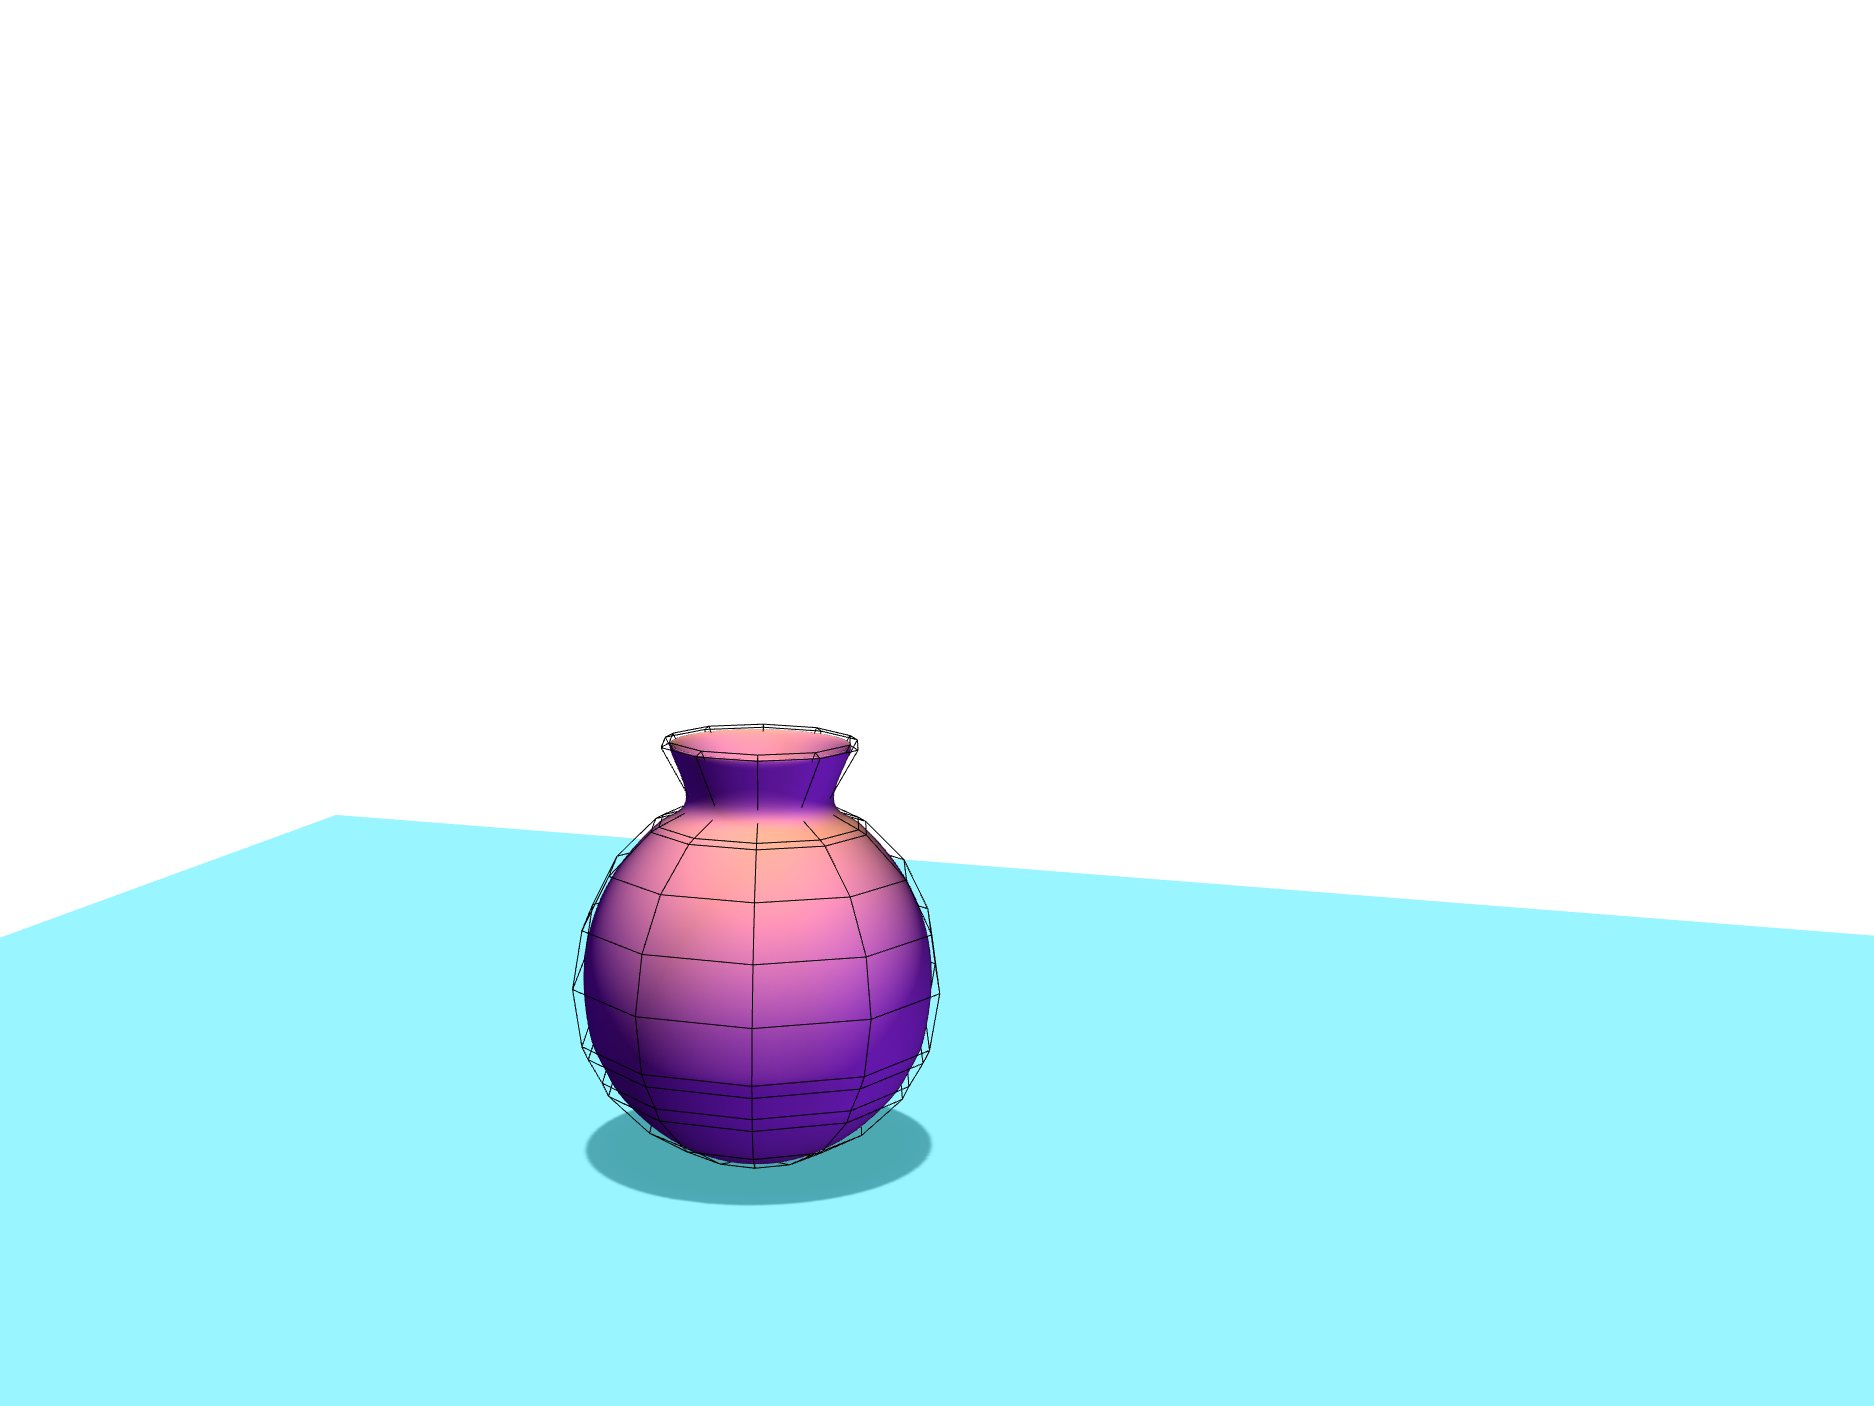 vase - 3D design by rajatsethi7 Apr 27, 2018